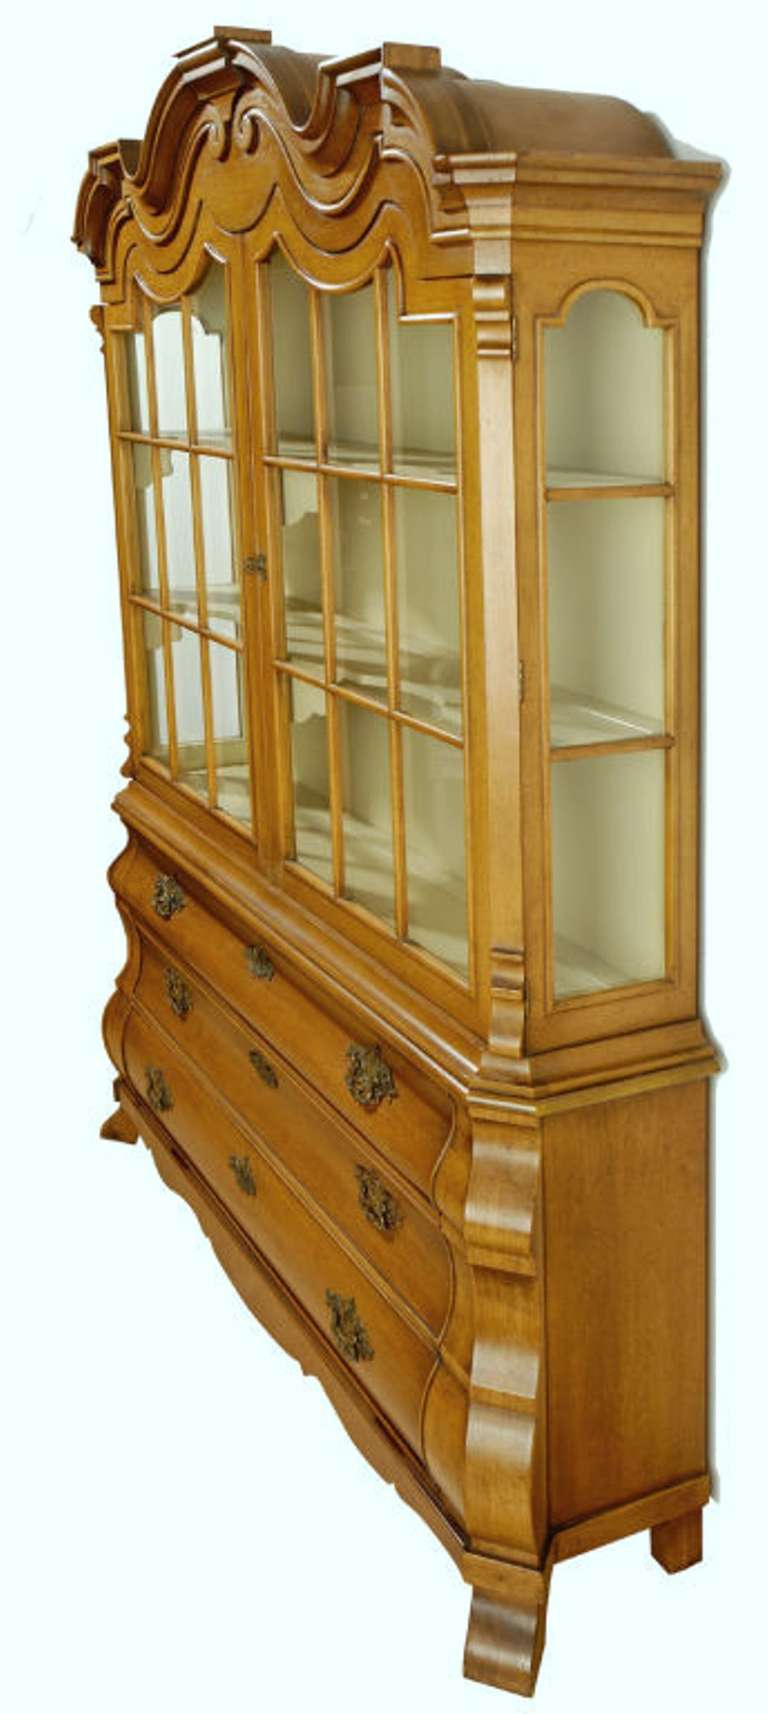 Impressive cabinet from Draper's 1963 Viennese collection for Henredon. Features bombe base with three drawers, splayed feet and intricately chased brass drop pulls. 